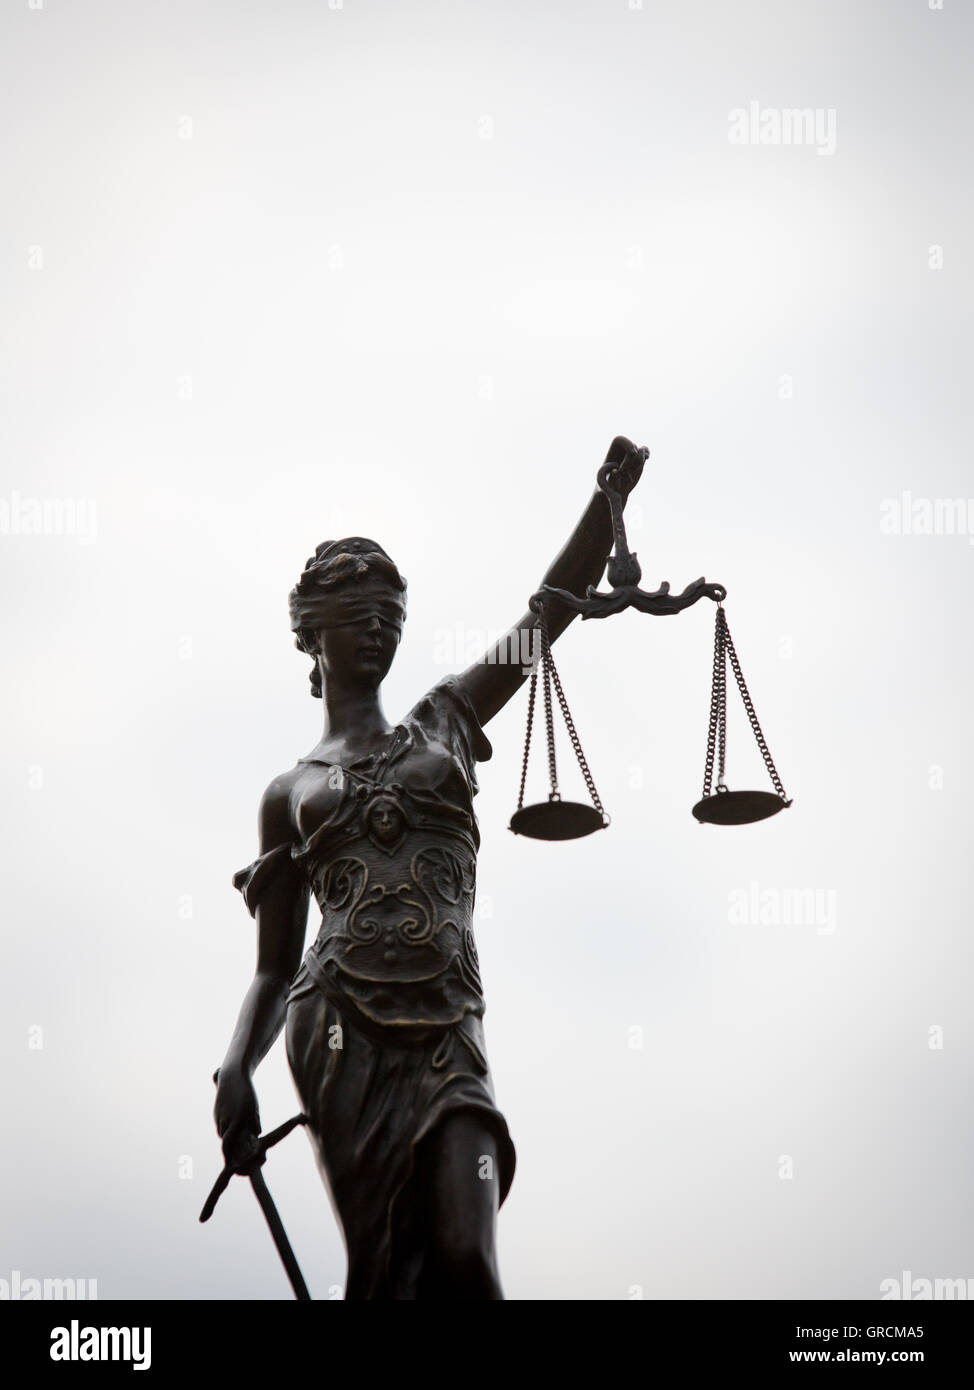 Justitia Against A Neutral Background - Stock Image